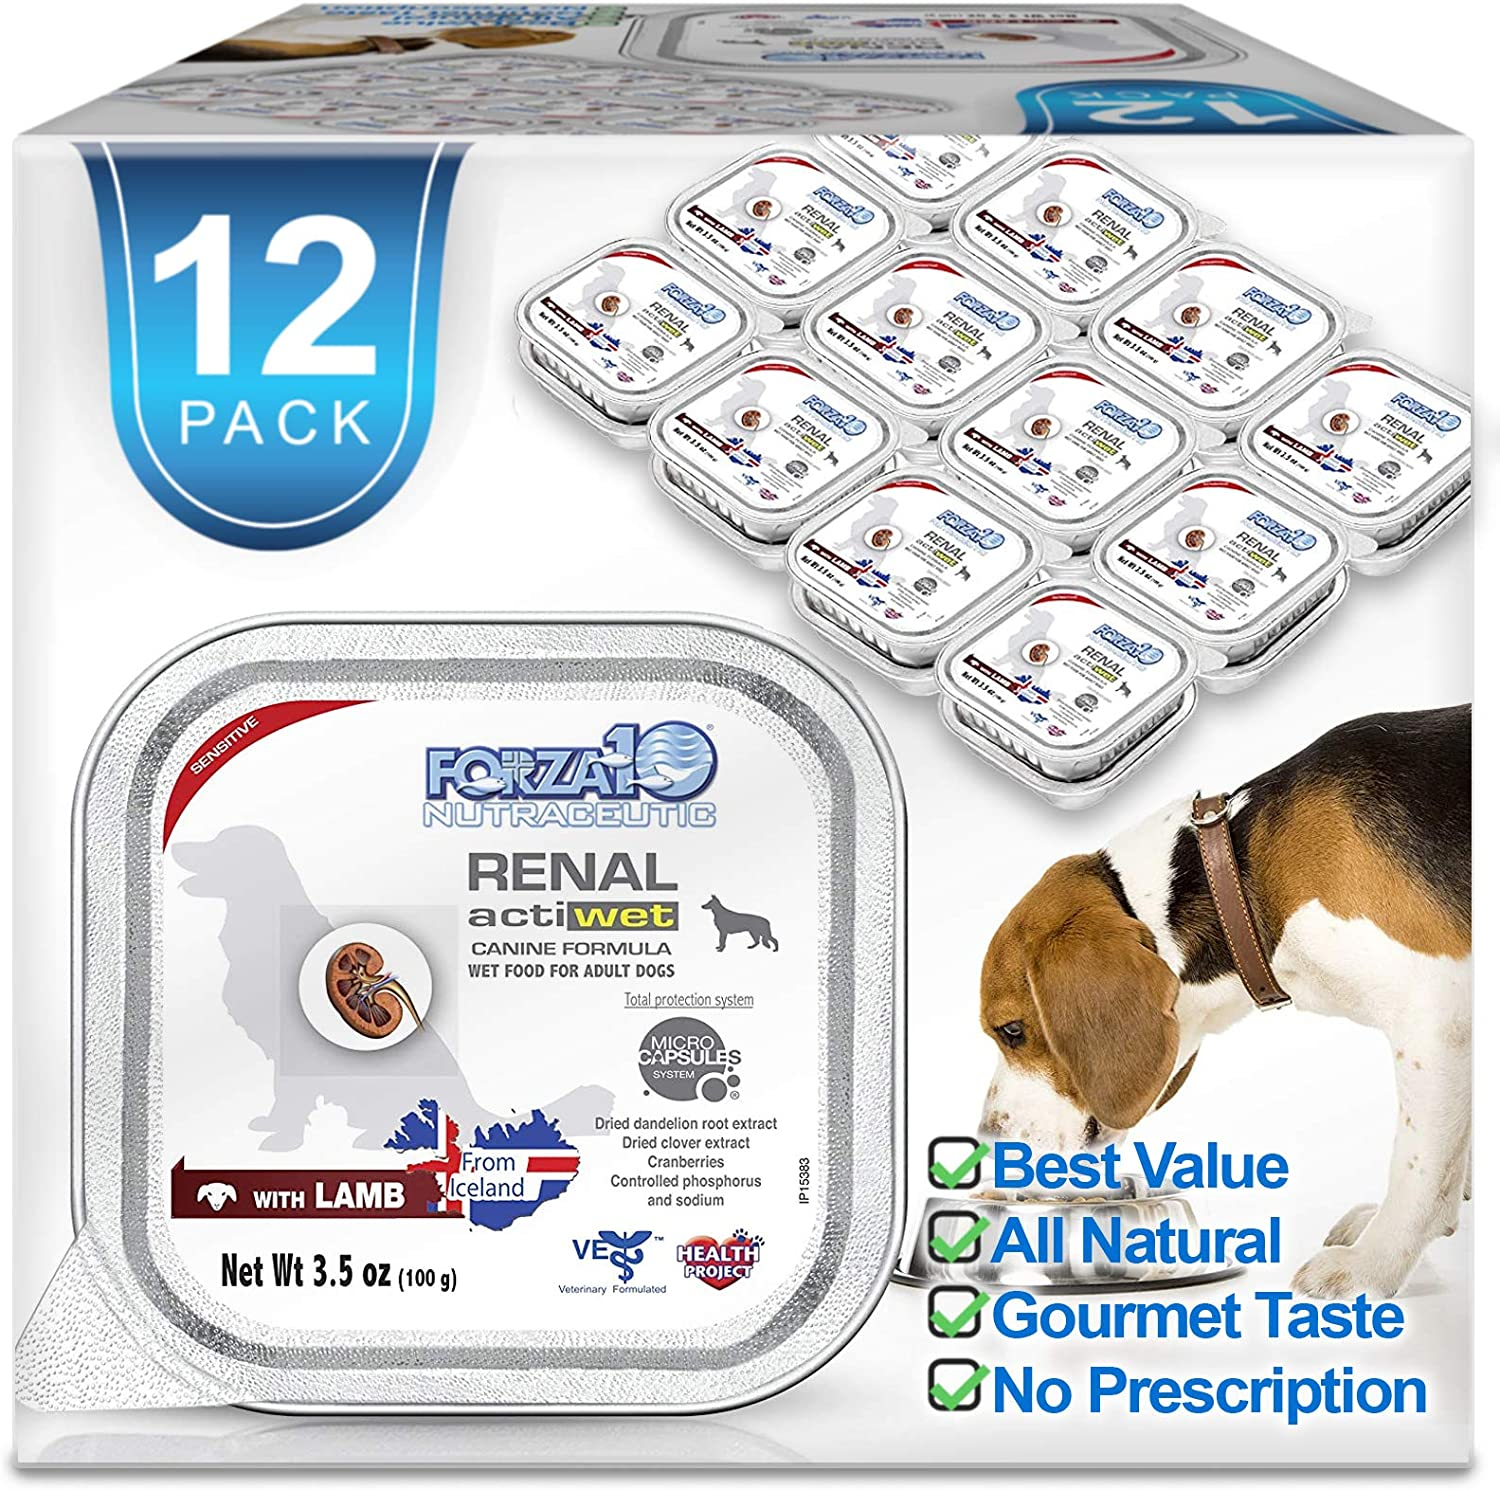 Forza10 Wet Dog Food Kidney RENAL ACTIWET with Lamb, 3.5oz, Adult Dog Food Wet, Dog Renal Support Canned Dog Food, 12 Pack Case